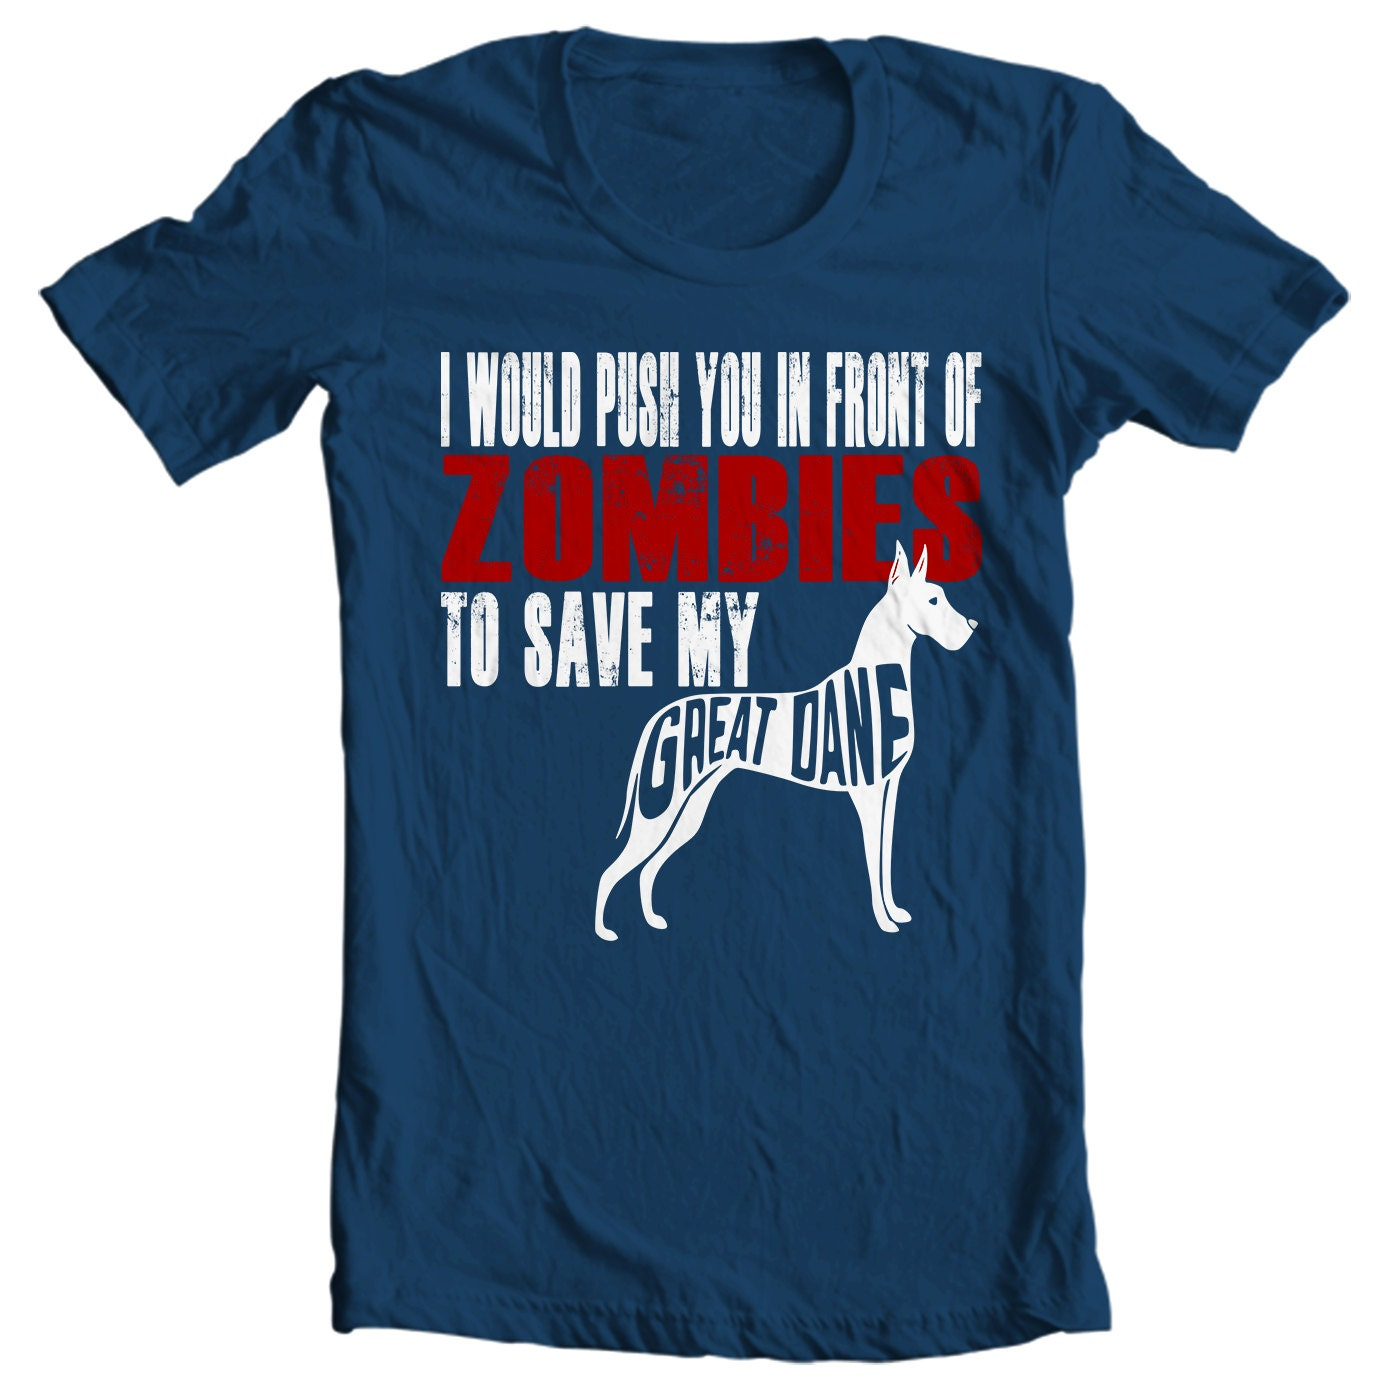 Great Dane T-shirt - I Would Push You In Front Of Zombies To Save My Great Dane - My Dog Great Dane T-shirt